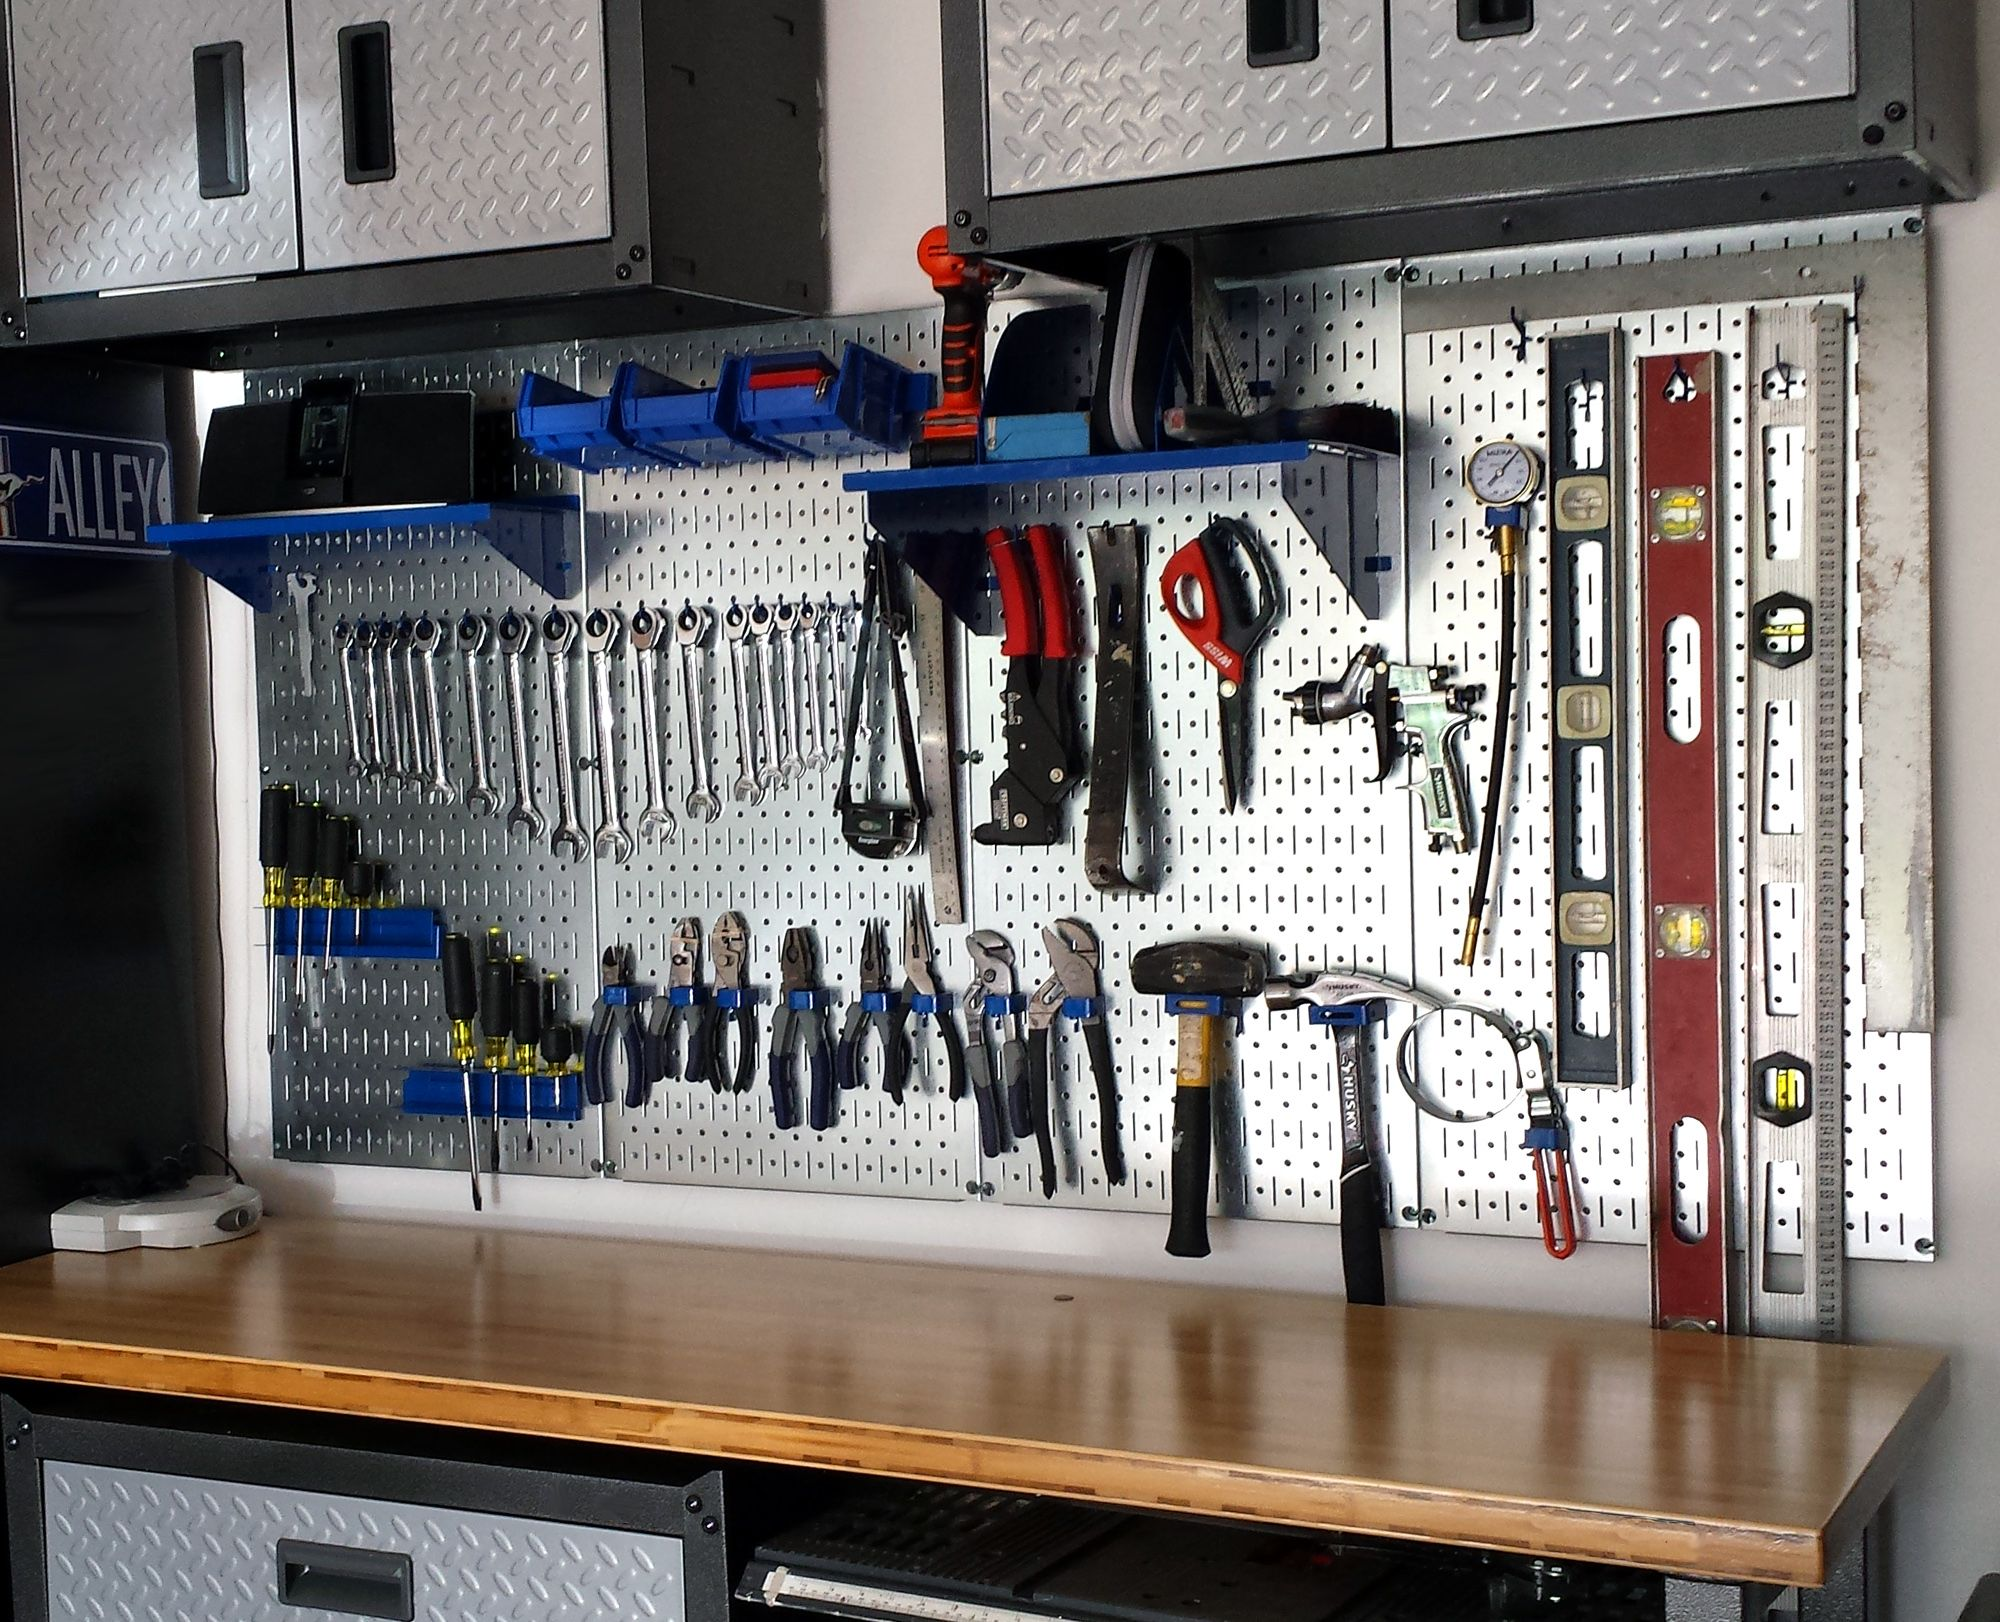 garage organization ideas pegboard - Wall Control Metal Pegboard for garage tool storage and